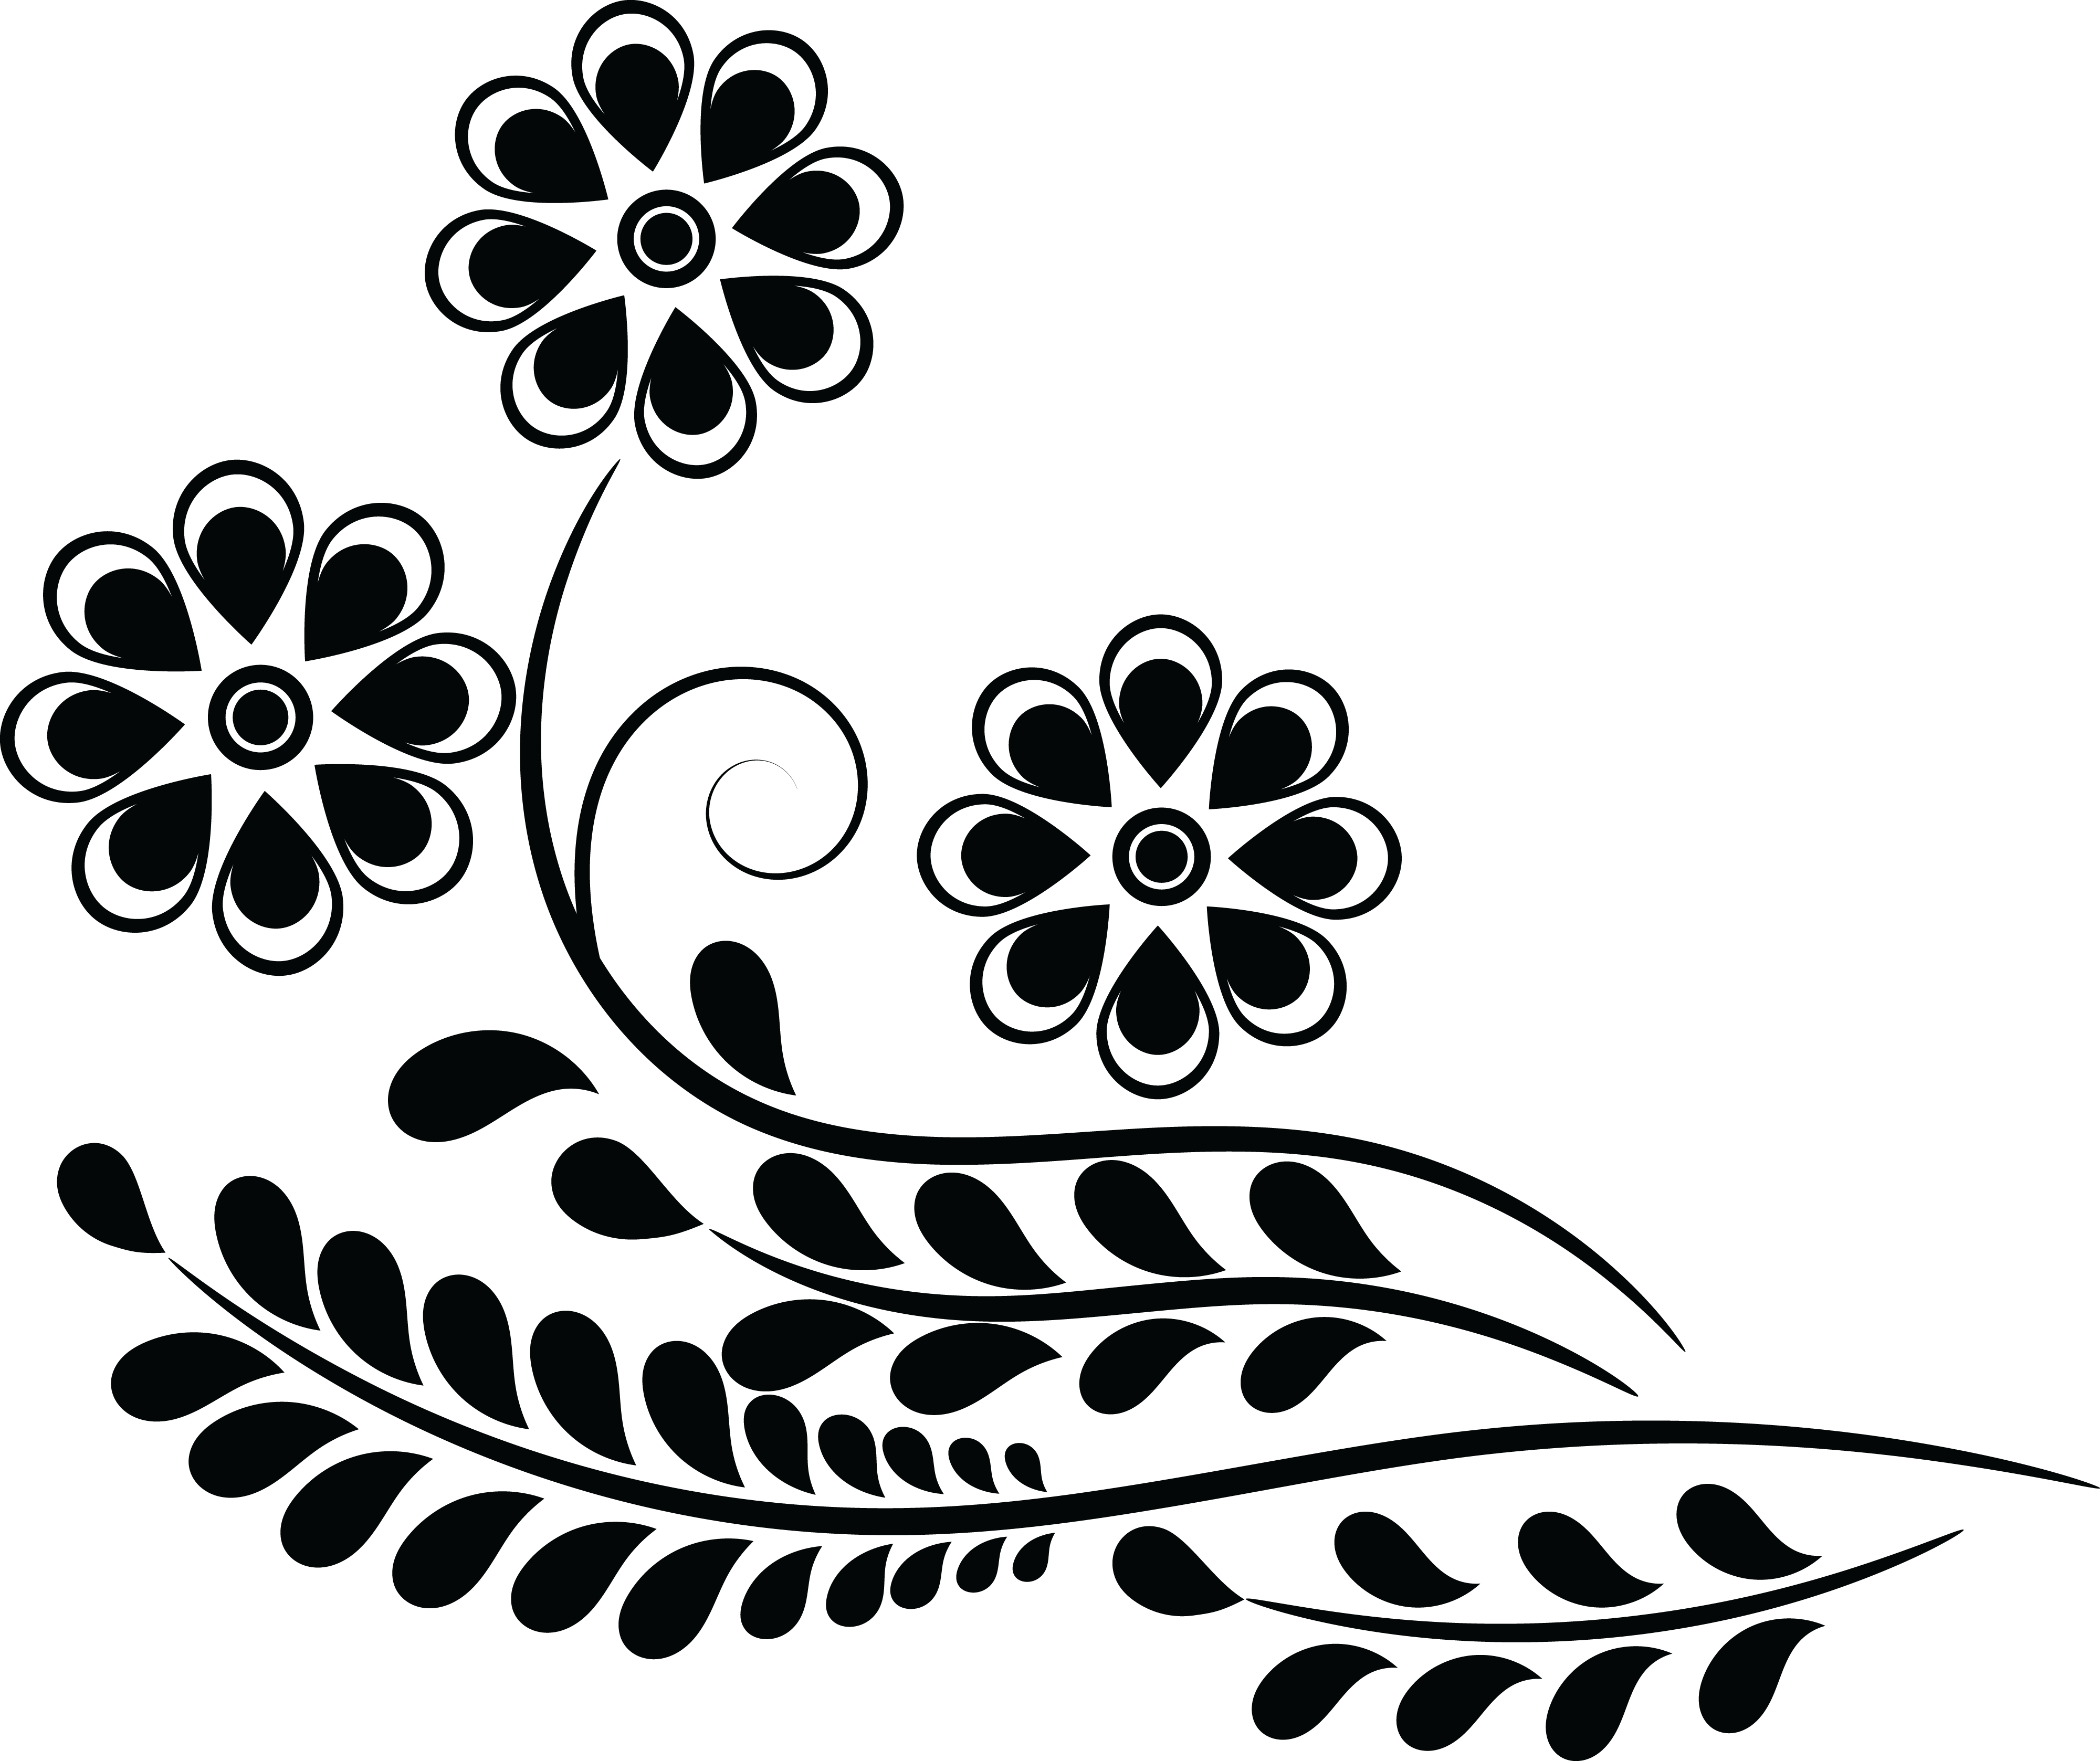 Flower clipart designs black and white download 28+ Collection of Design Clipart Png | High quality, free cliparts ... black and white download